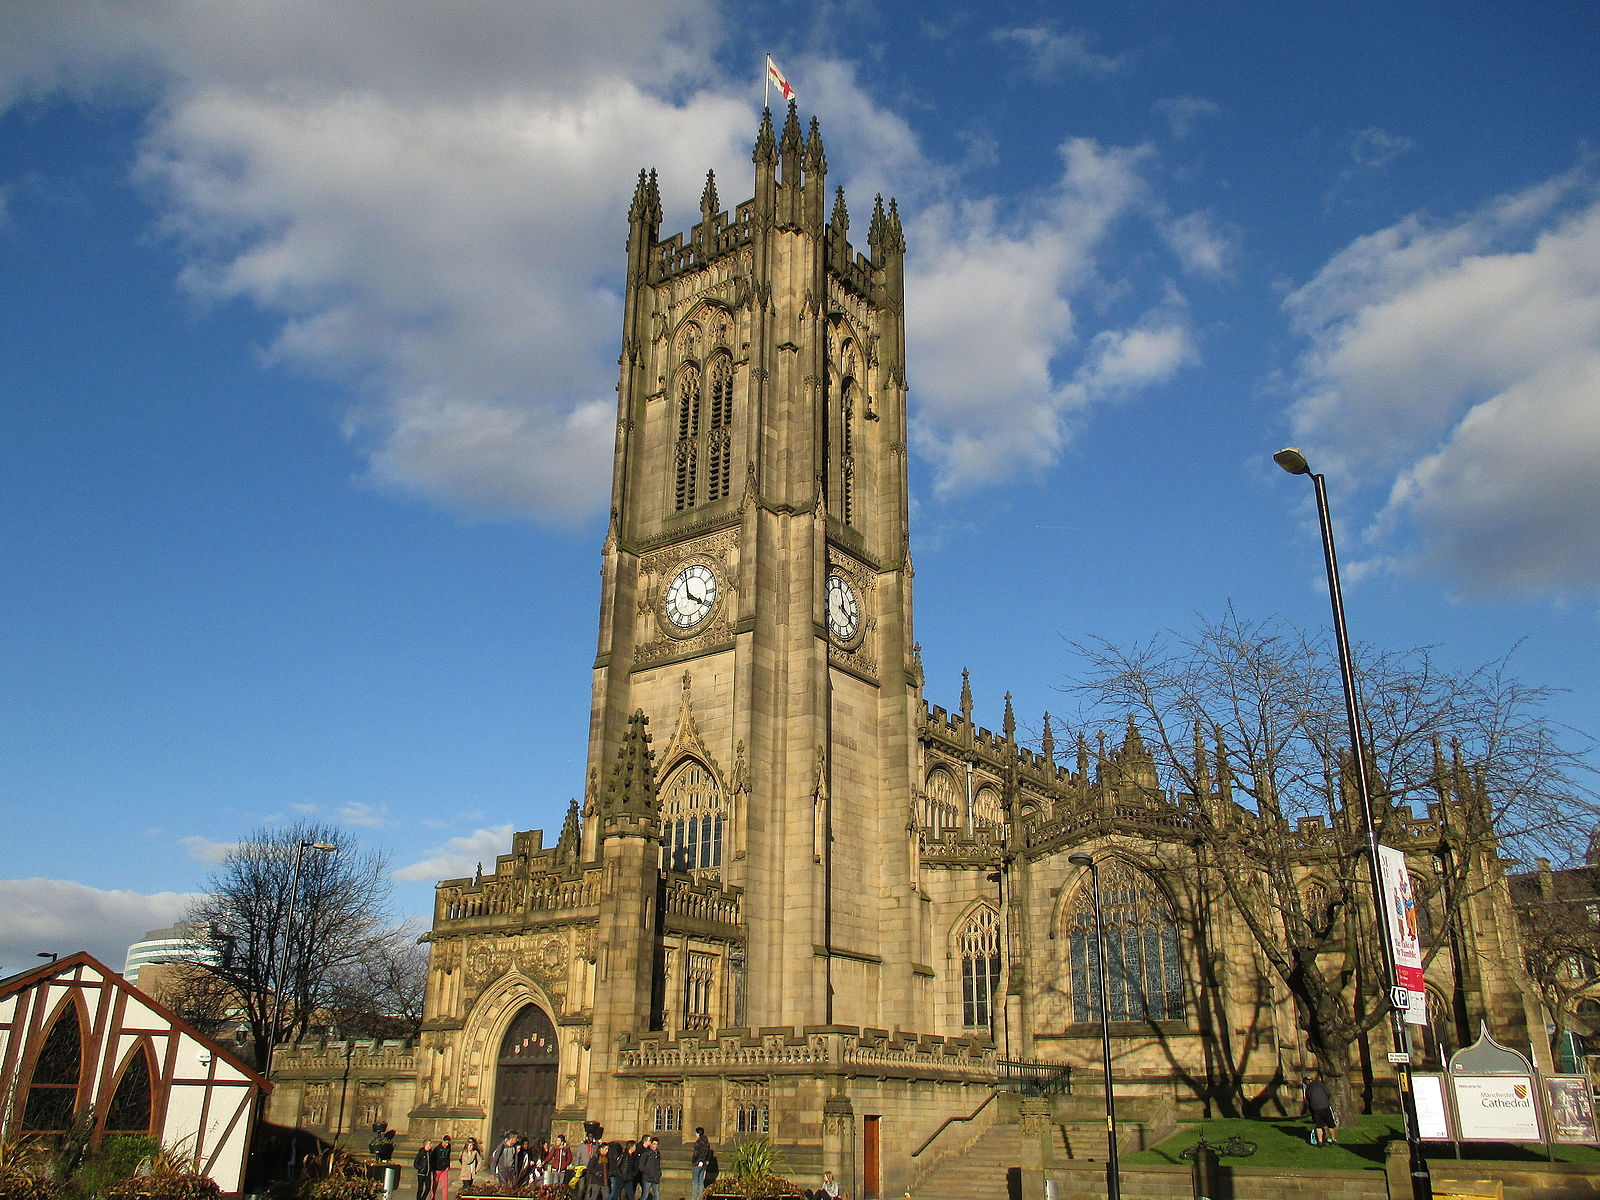 Manchester Cathedral to hold memorial service for coronavirus victims on Thursday, The Manc